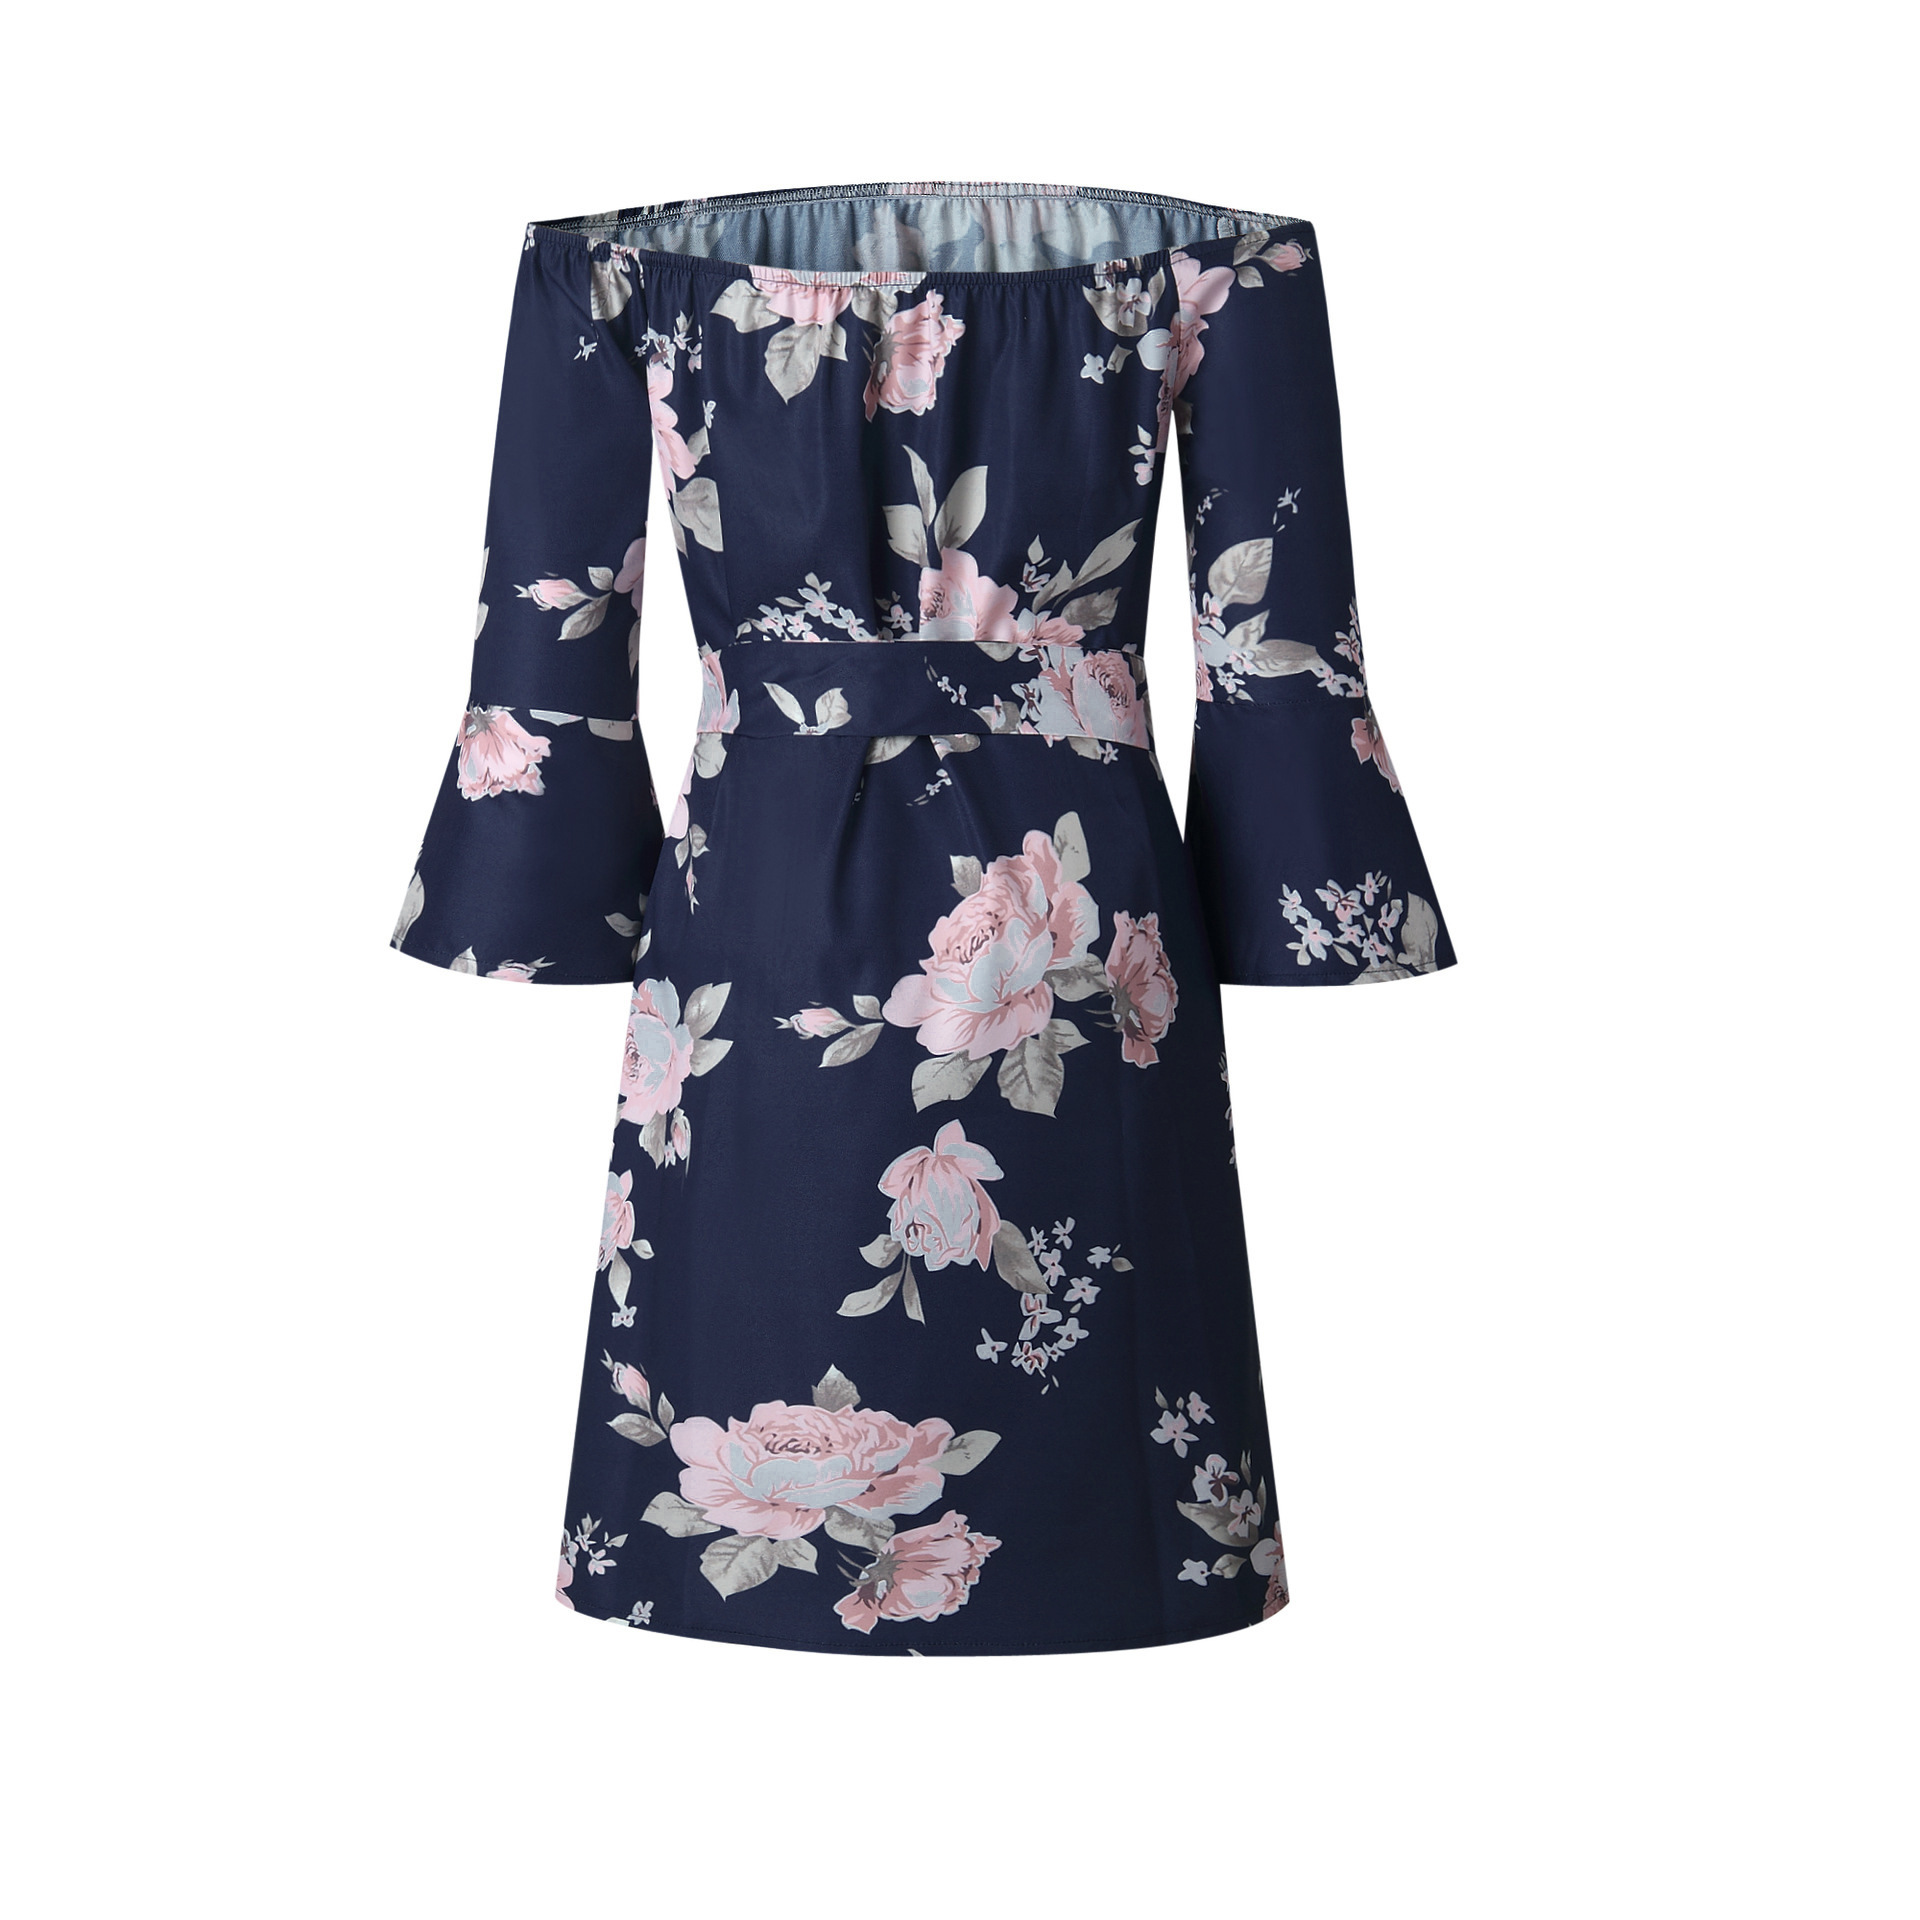 9d5f60fbc2 Aliexpress Europe Trade Explosion Source Word Shoulder Sexy Backless Dress  Vestidos Print dress Beach Dress 2019-in Dresses from Women's Clothing on  ...